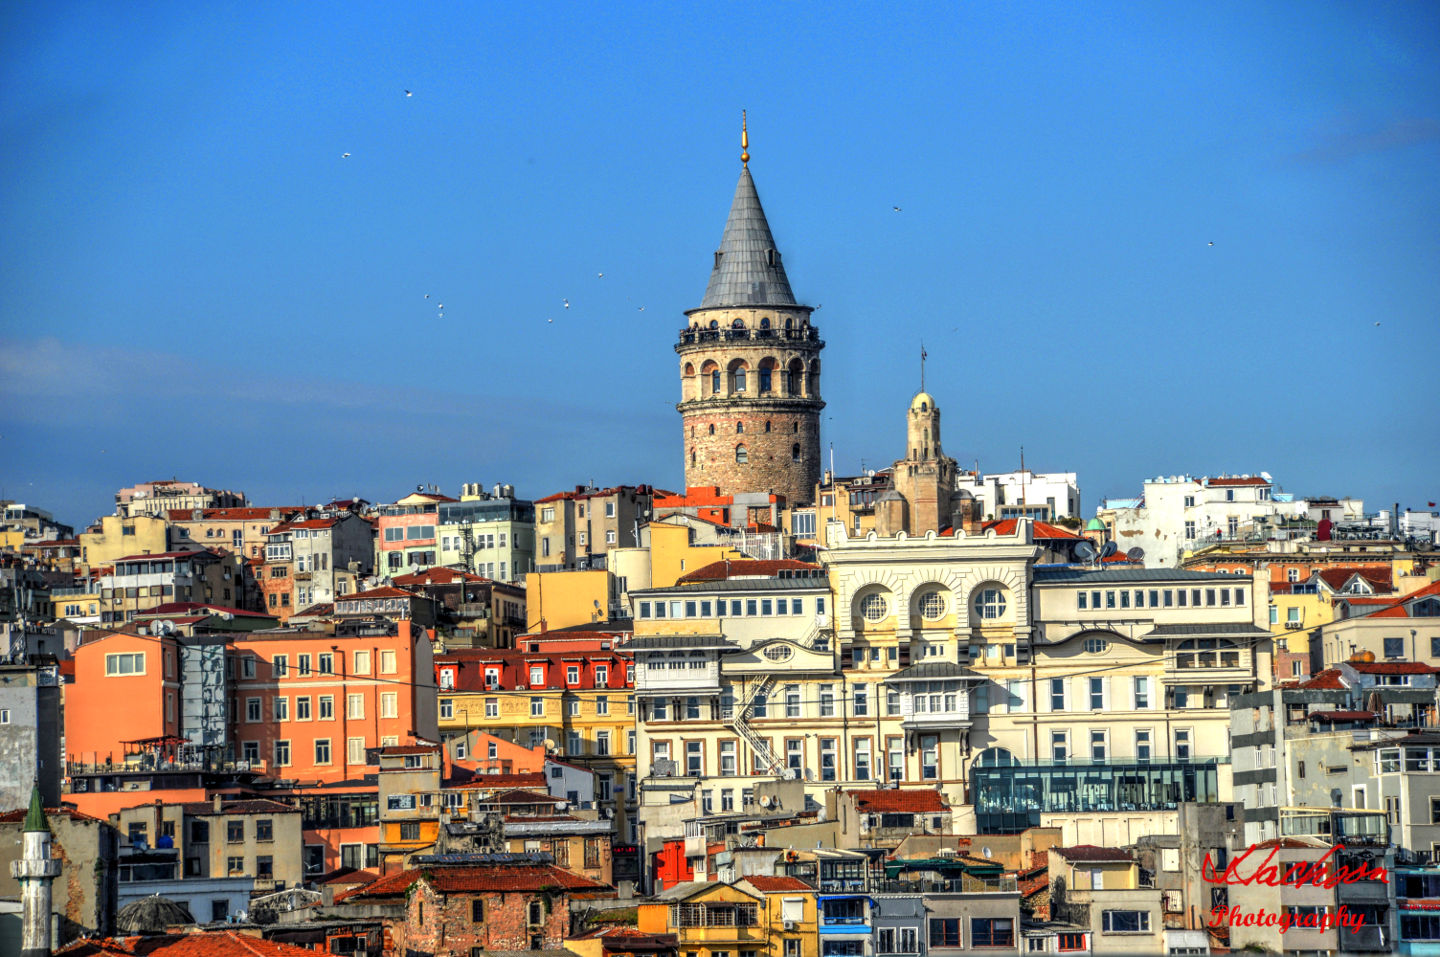 Photo of the Top of the hill in Istanbul